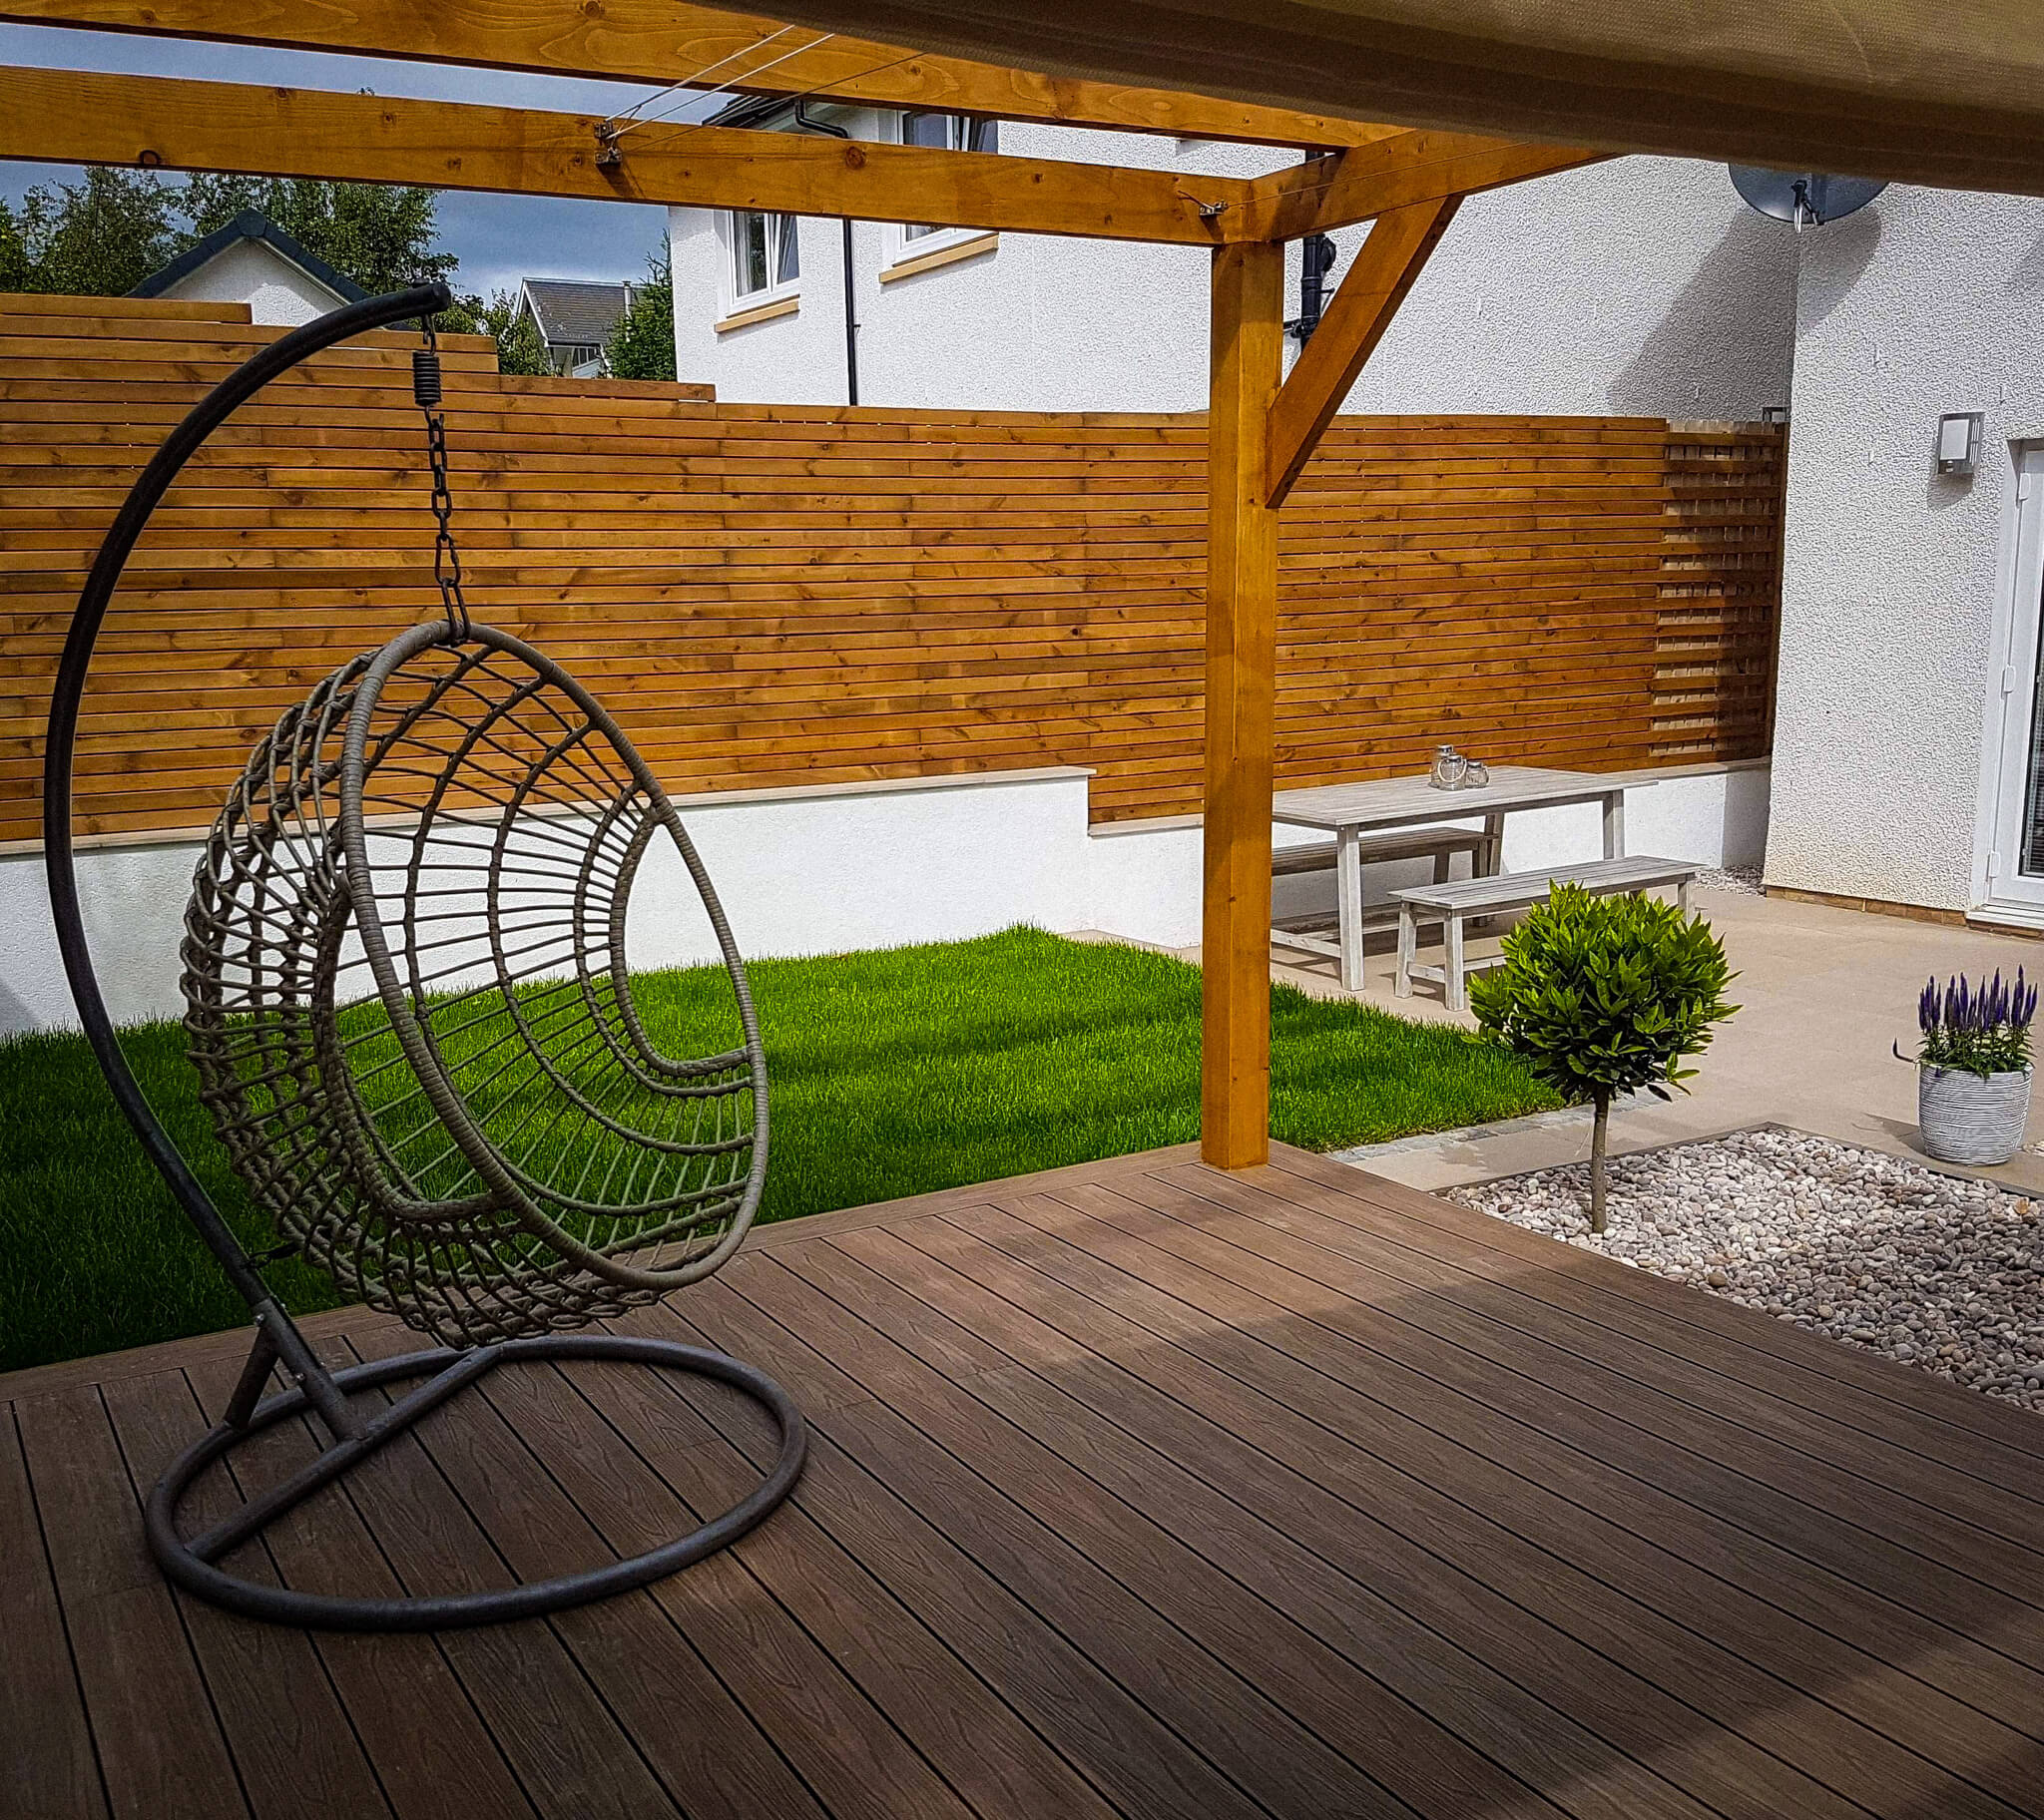 Wooden pergola with roof, seat